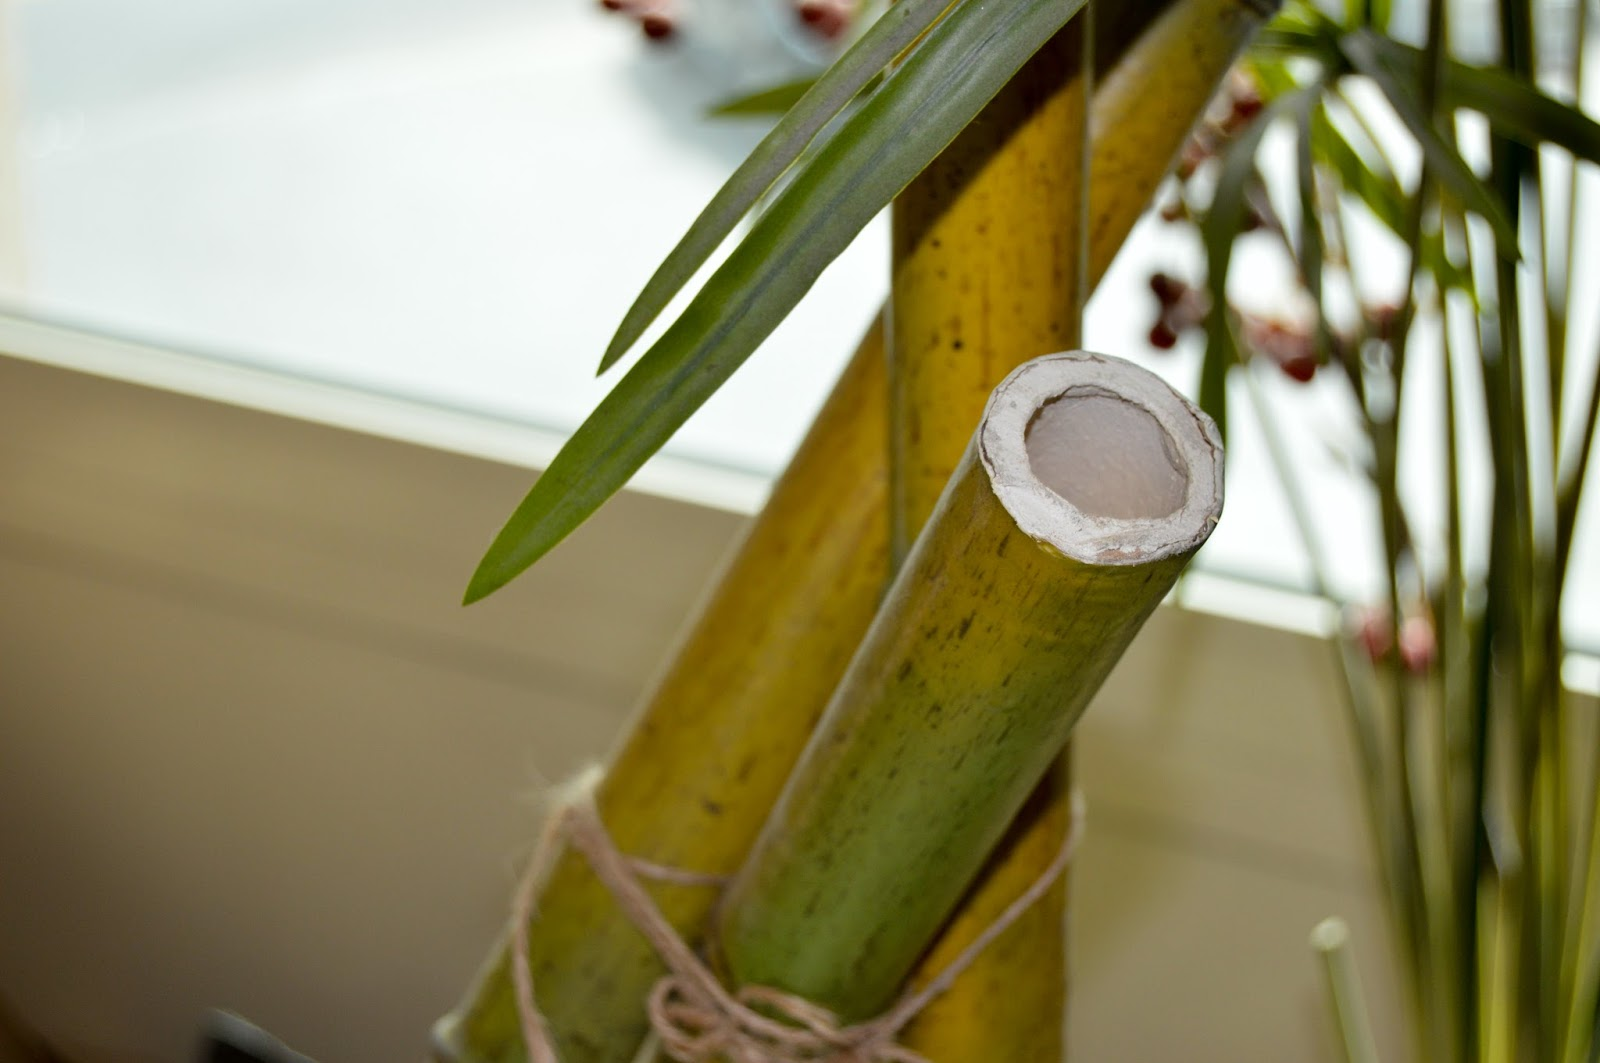 Bamboo Plant free stock photos - Royalty Free Images